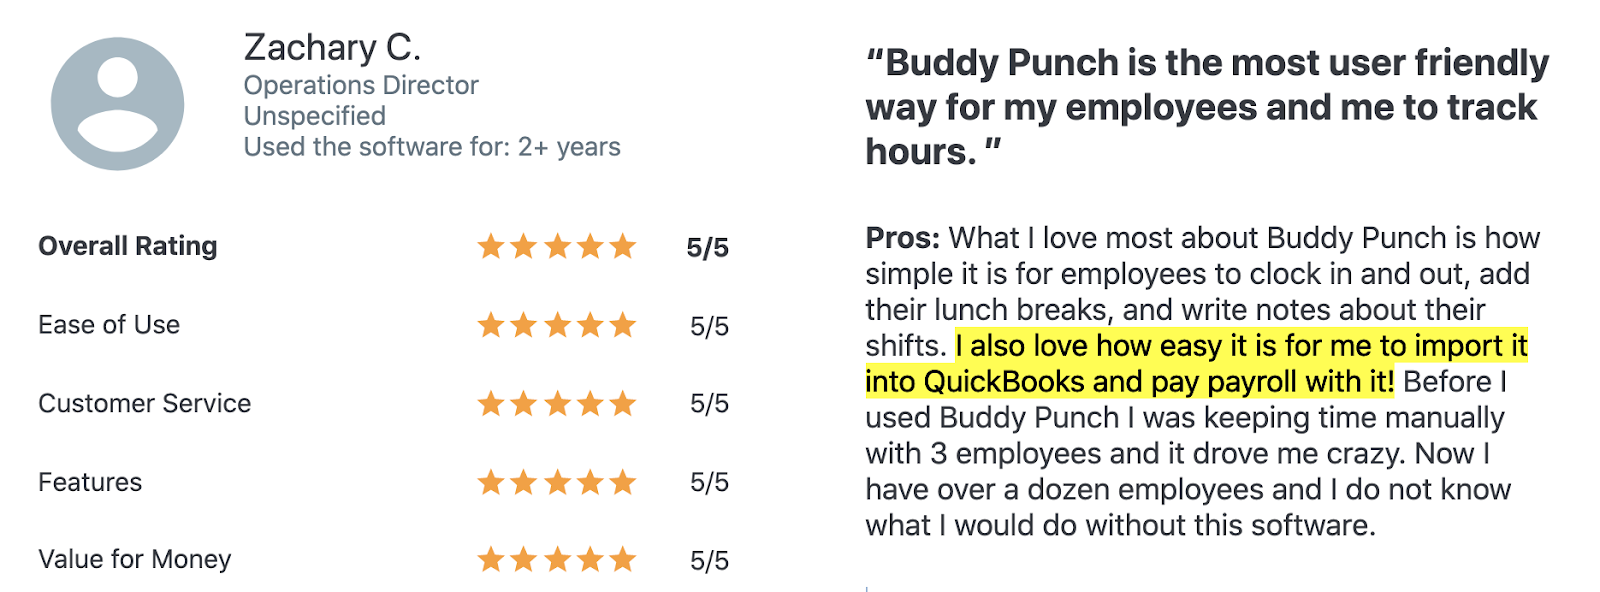 """Buddy Punch review: """"Buddy Punch is the most user friendly way for my employees and me to track hours."""""""